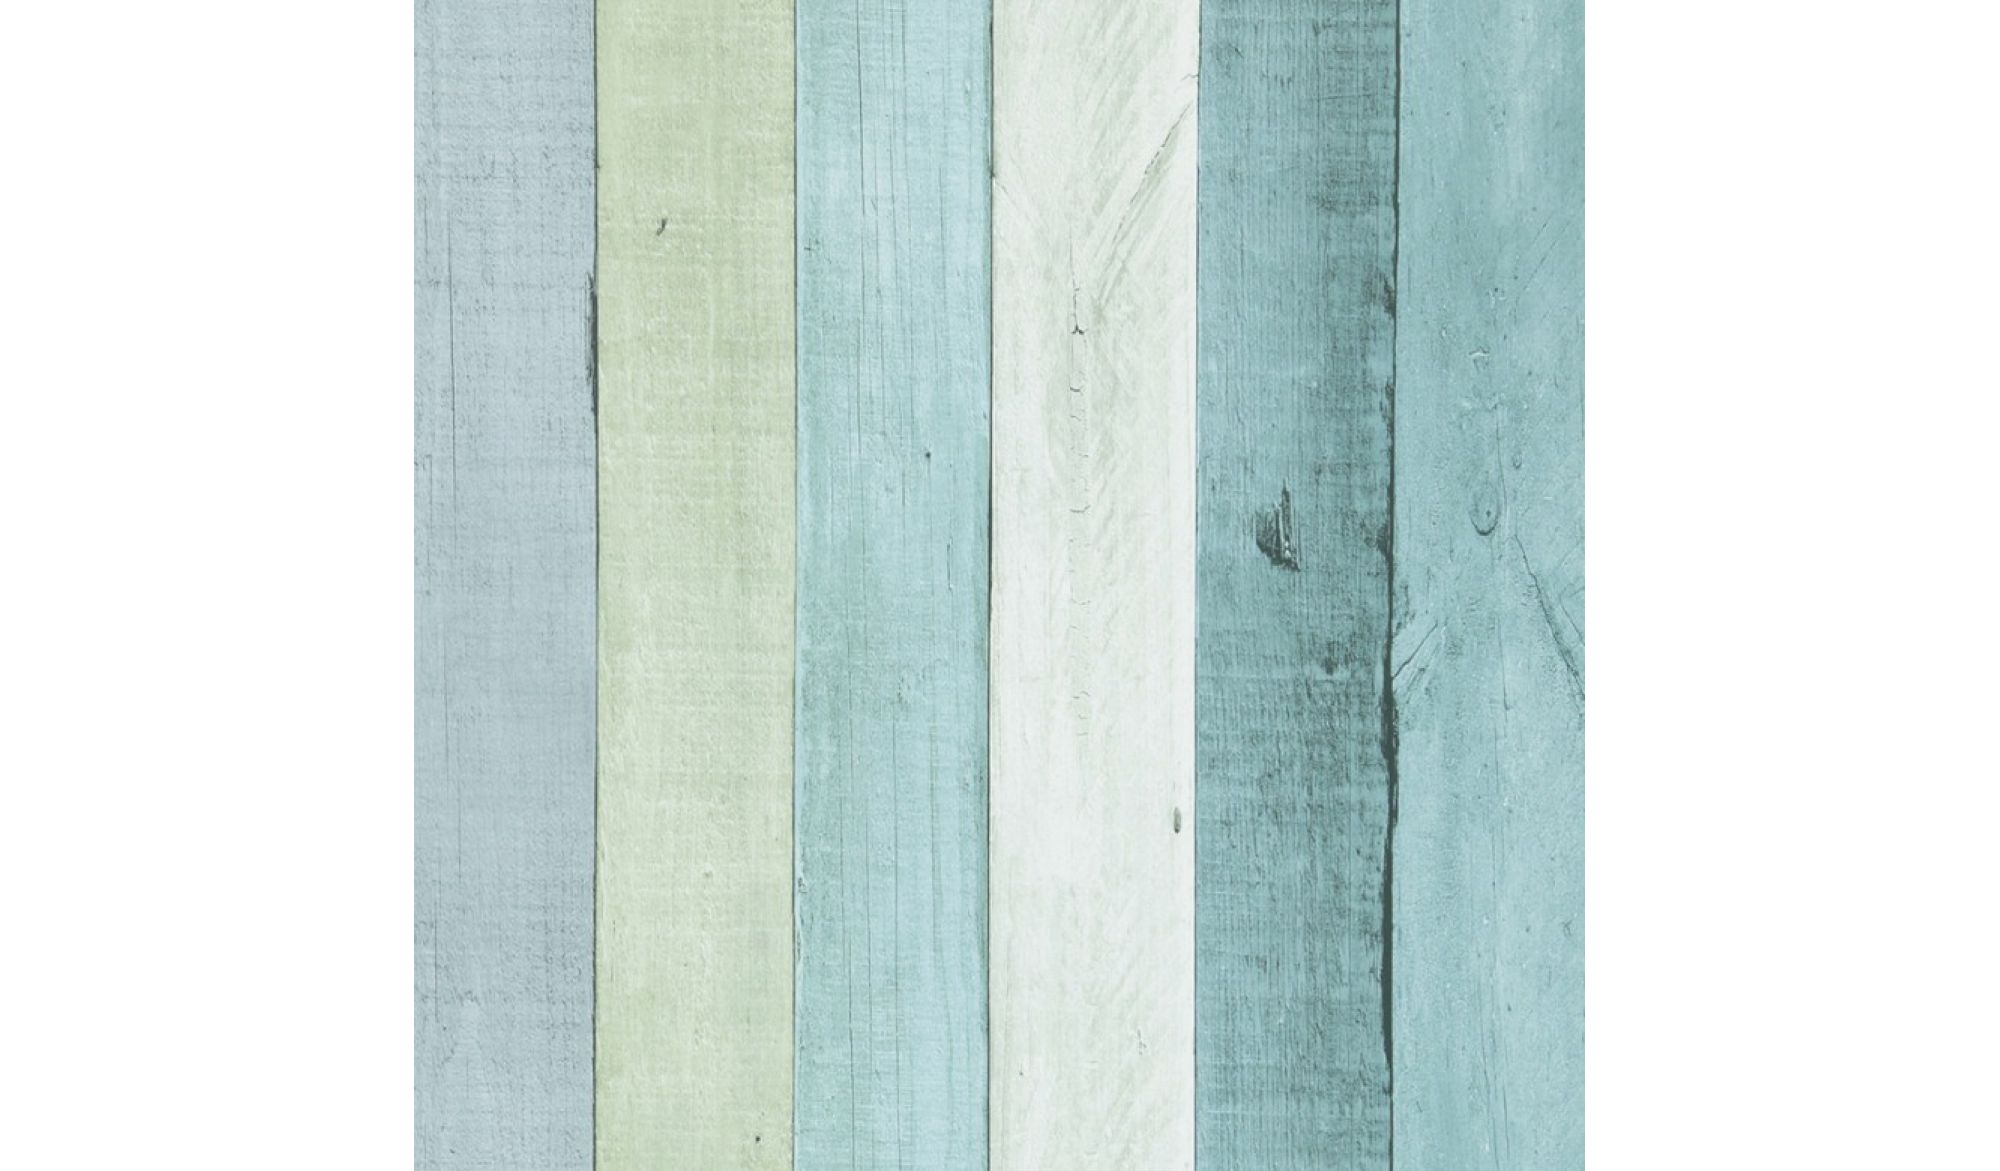 TAPETA WOODEN PANEL Turquoise 17 - Wallpaper alt_tapety_kolor_turquoise 17 Checked Graphics - Colour